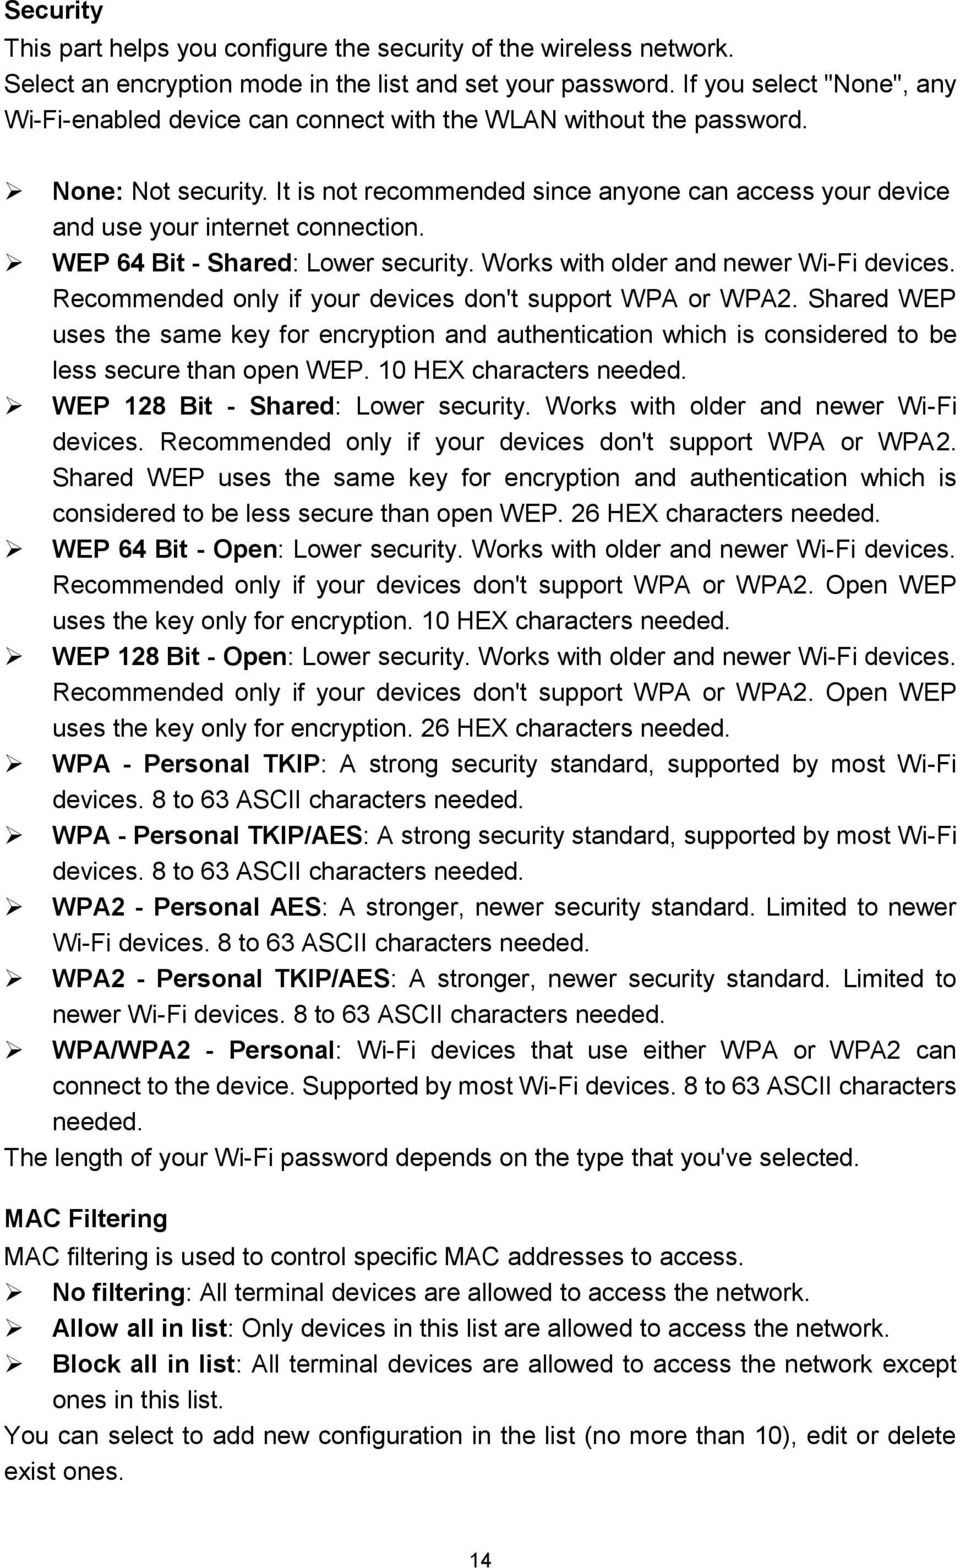 It is not recommended since anyone can access your device and use your internet connection. WEP 64 Bit - Shared: Lower security. Works with older and newer Wi-Fi devices.